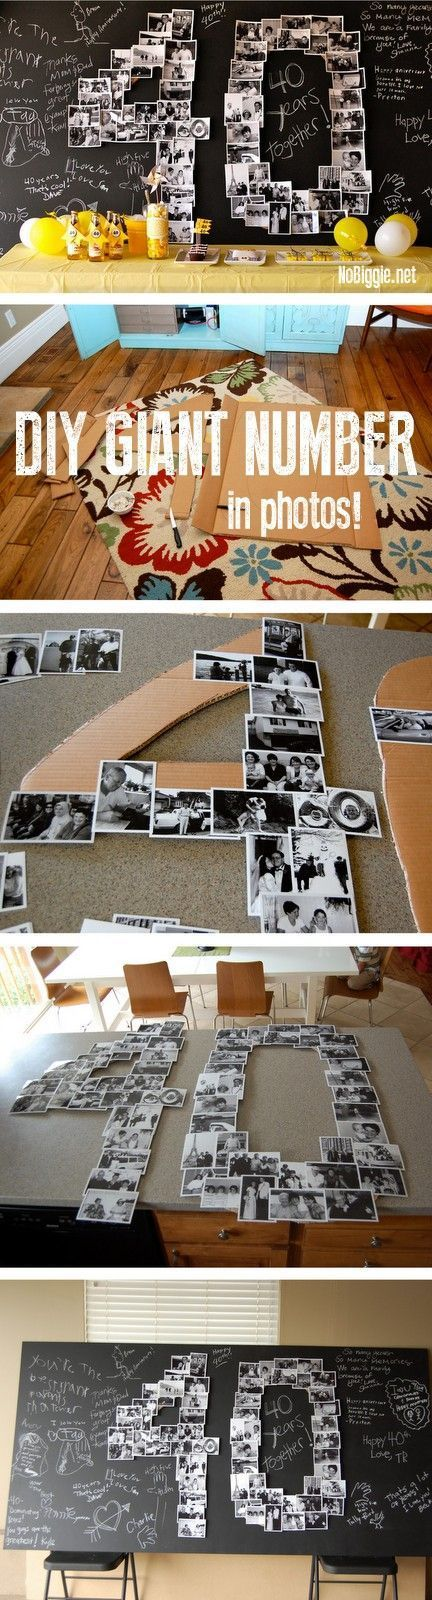 DIY Giant Number Photo Collage #mygirl